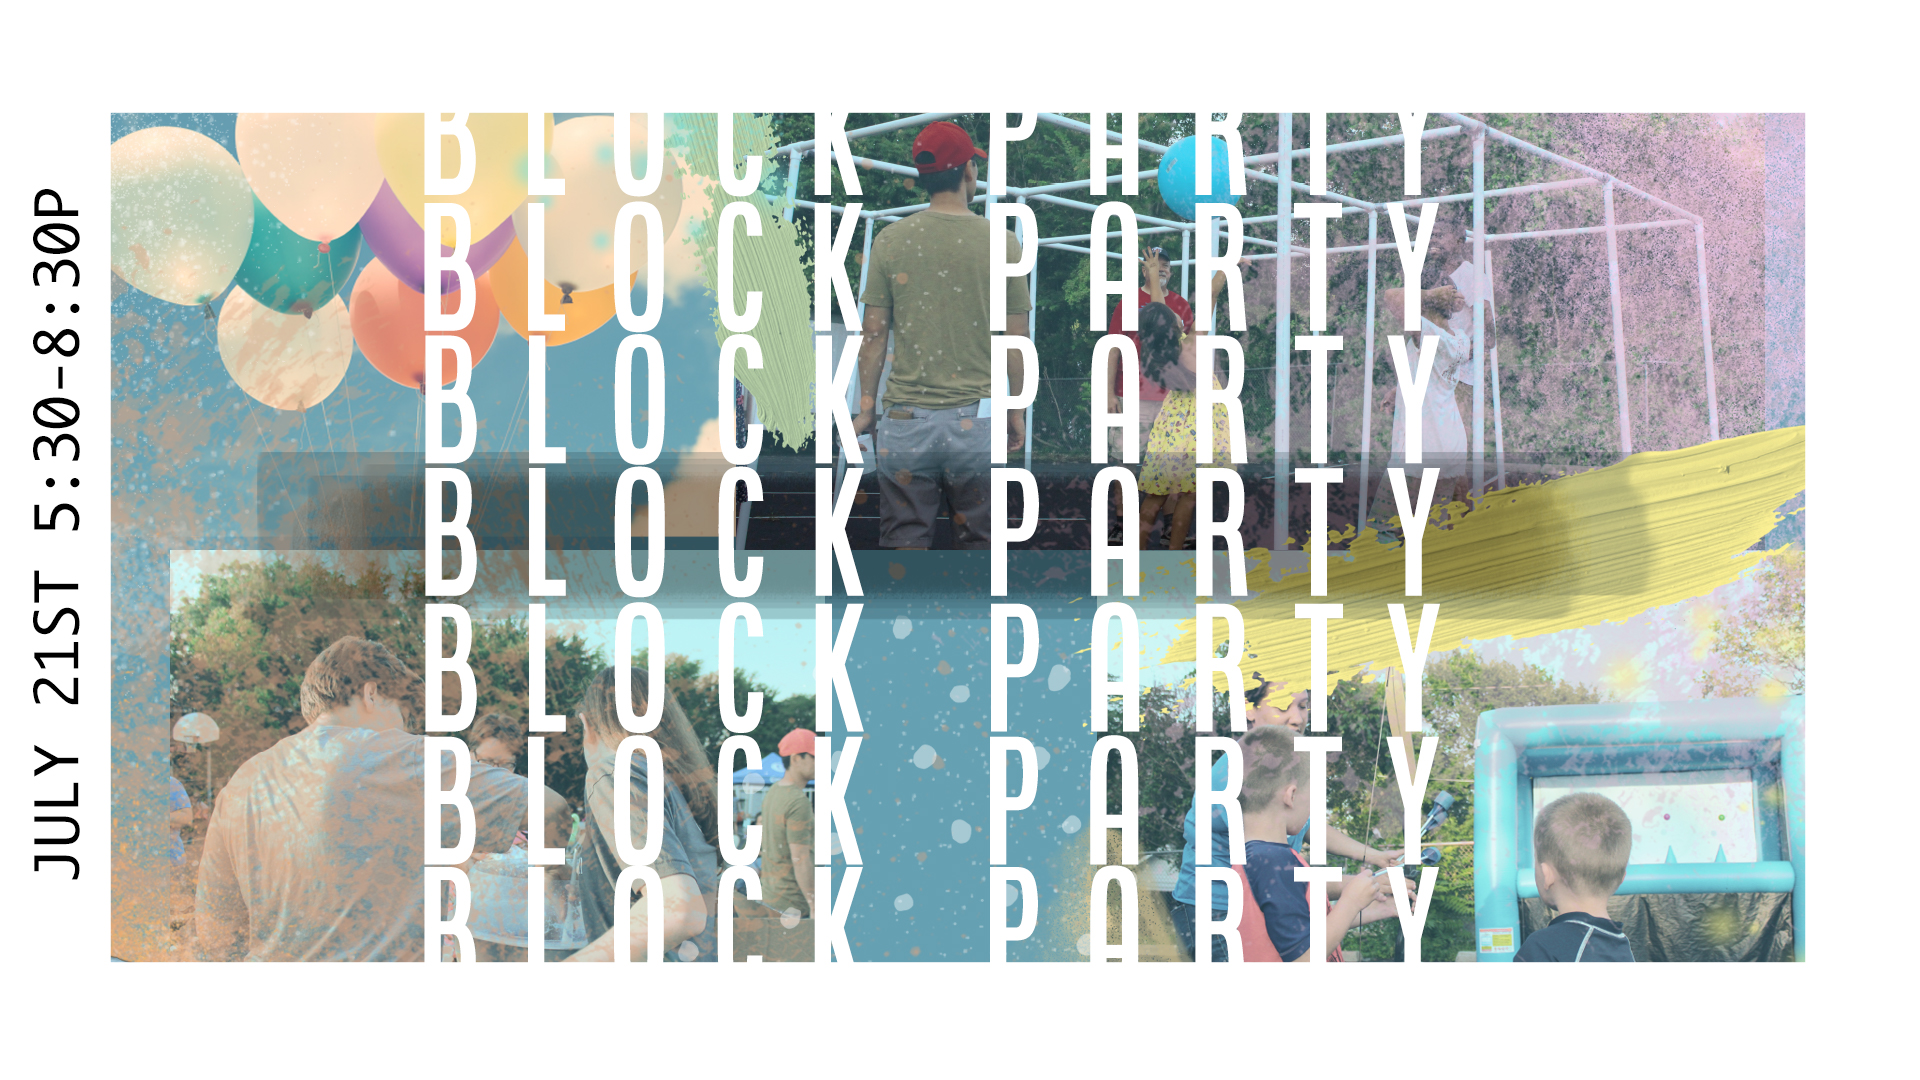 Blockpartysundayscrolling